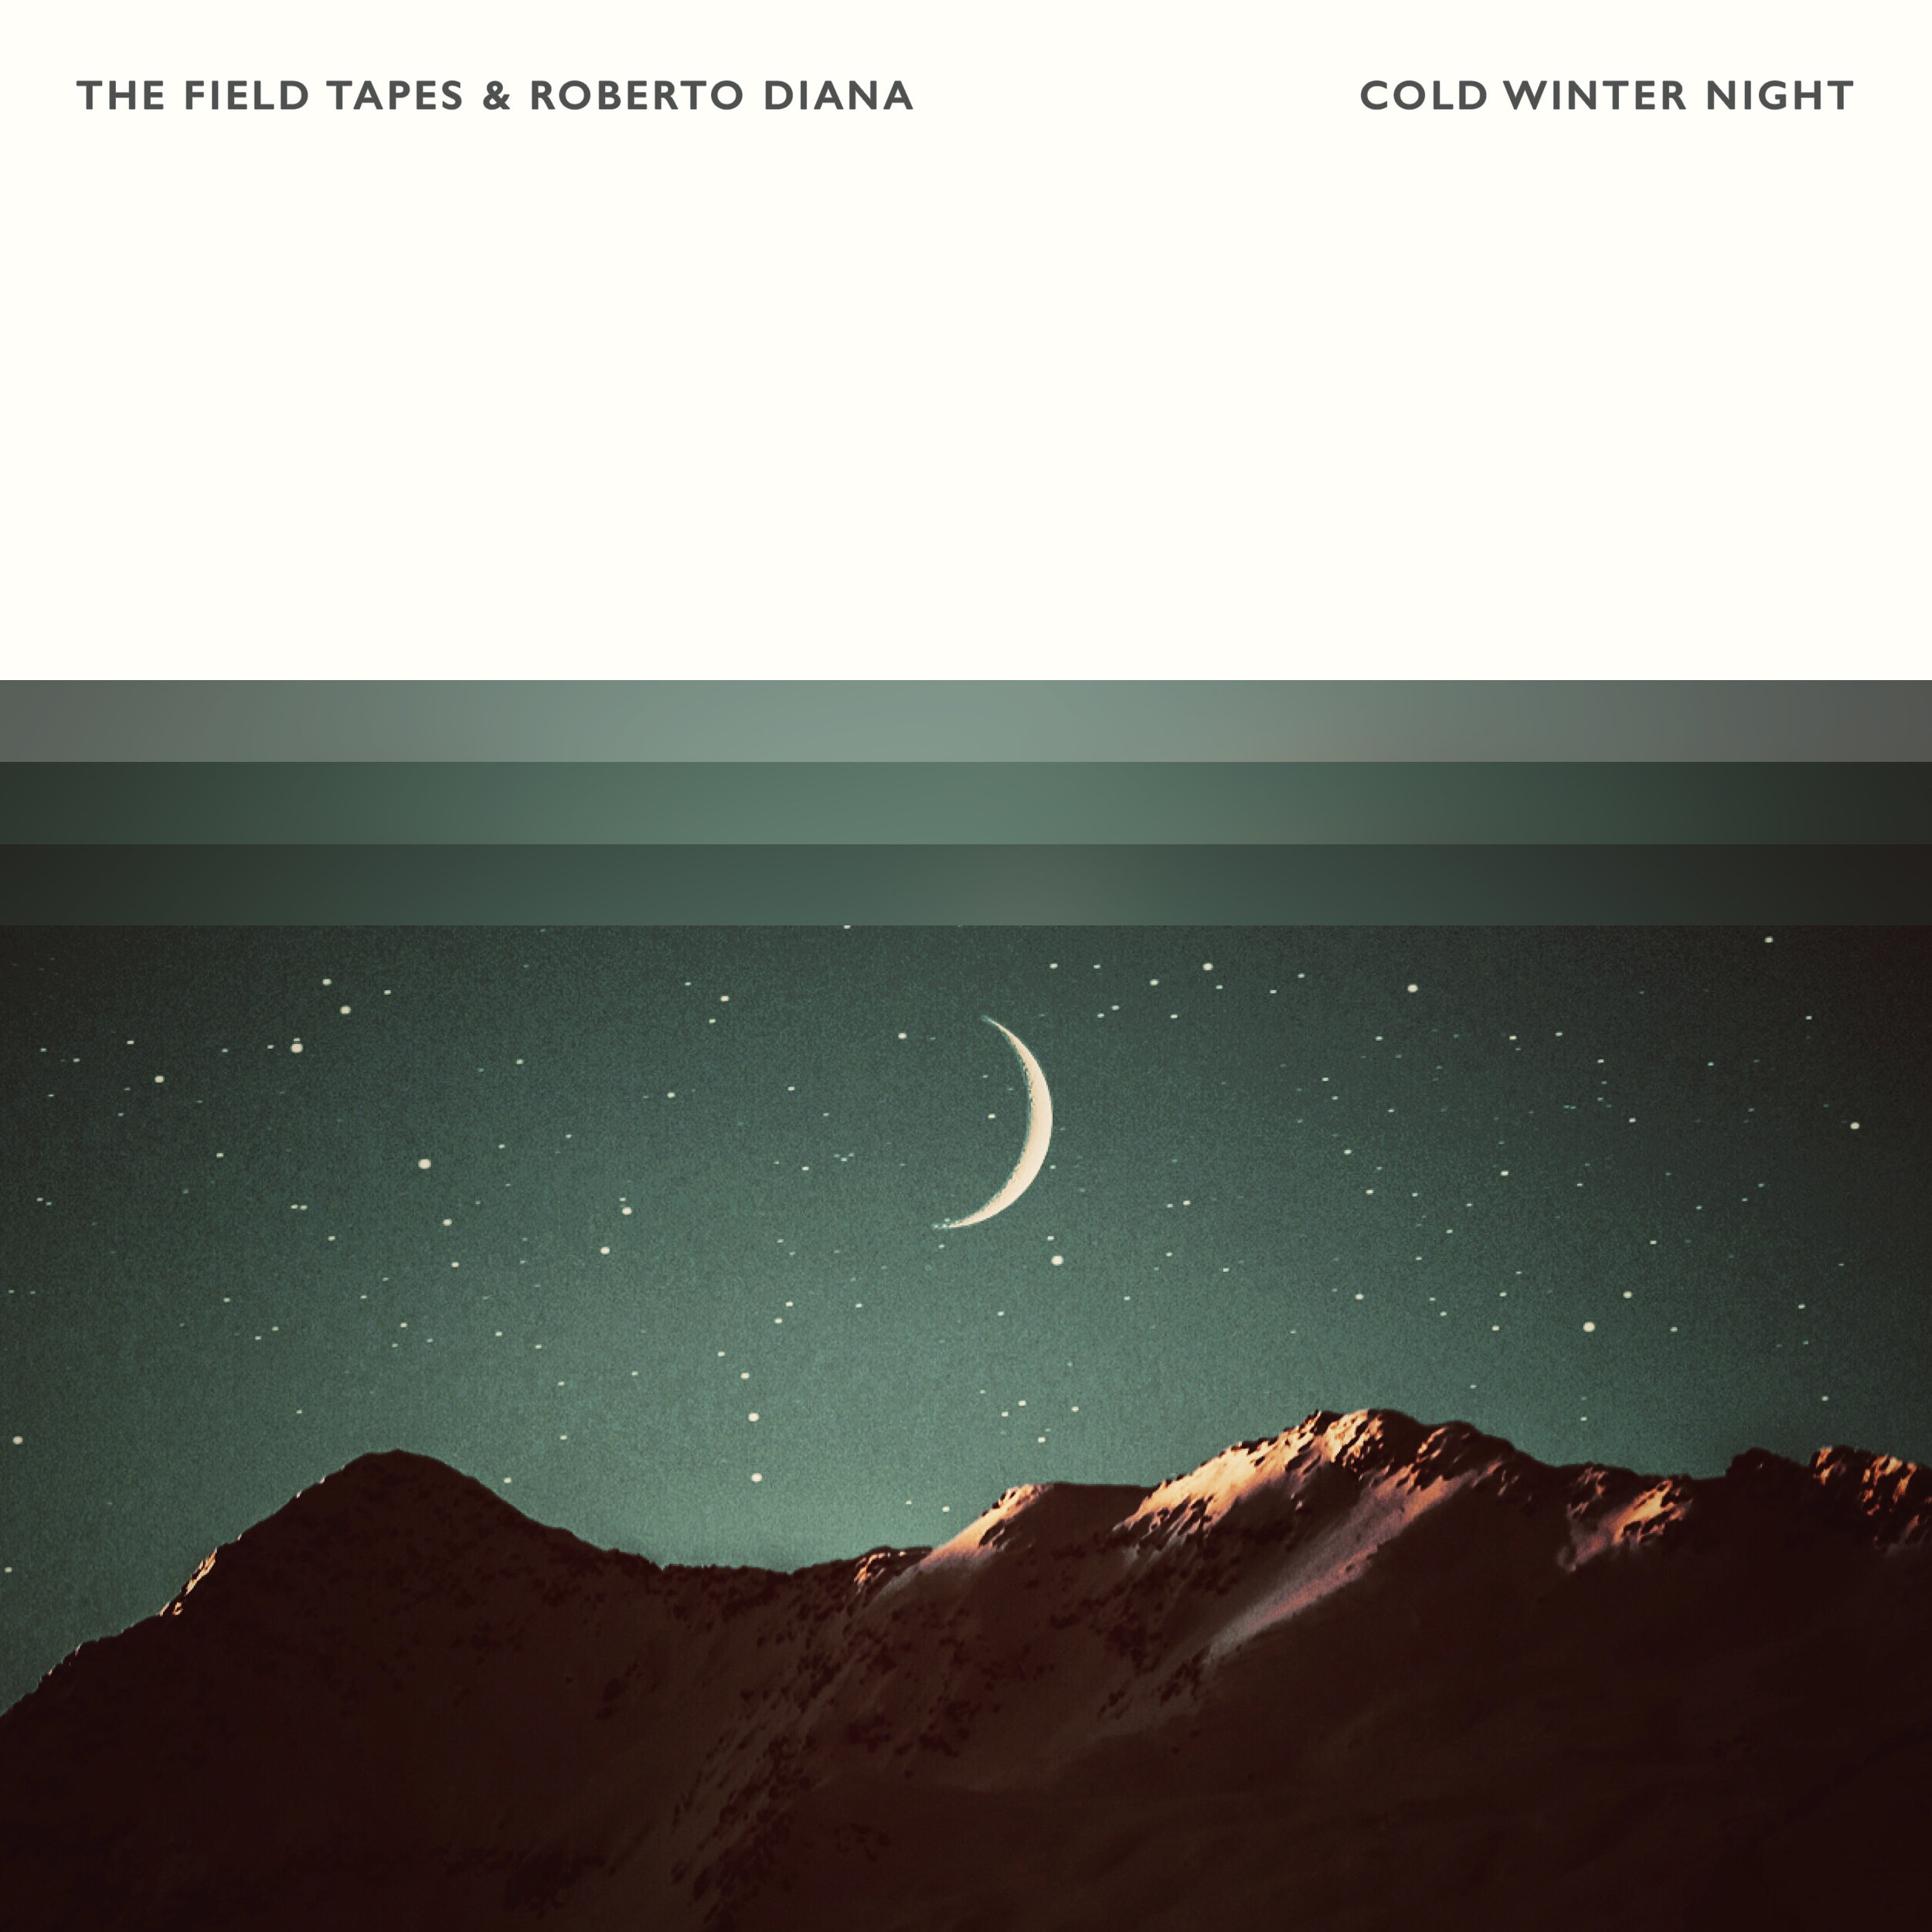 The Field Tapes & Roberto Diana - Cold Winter Night